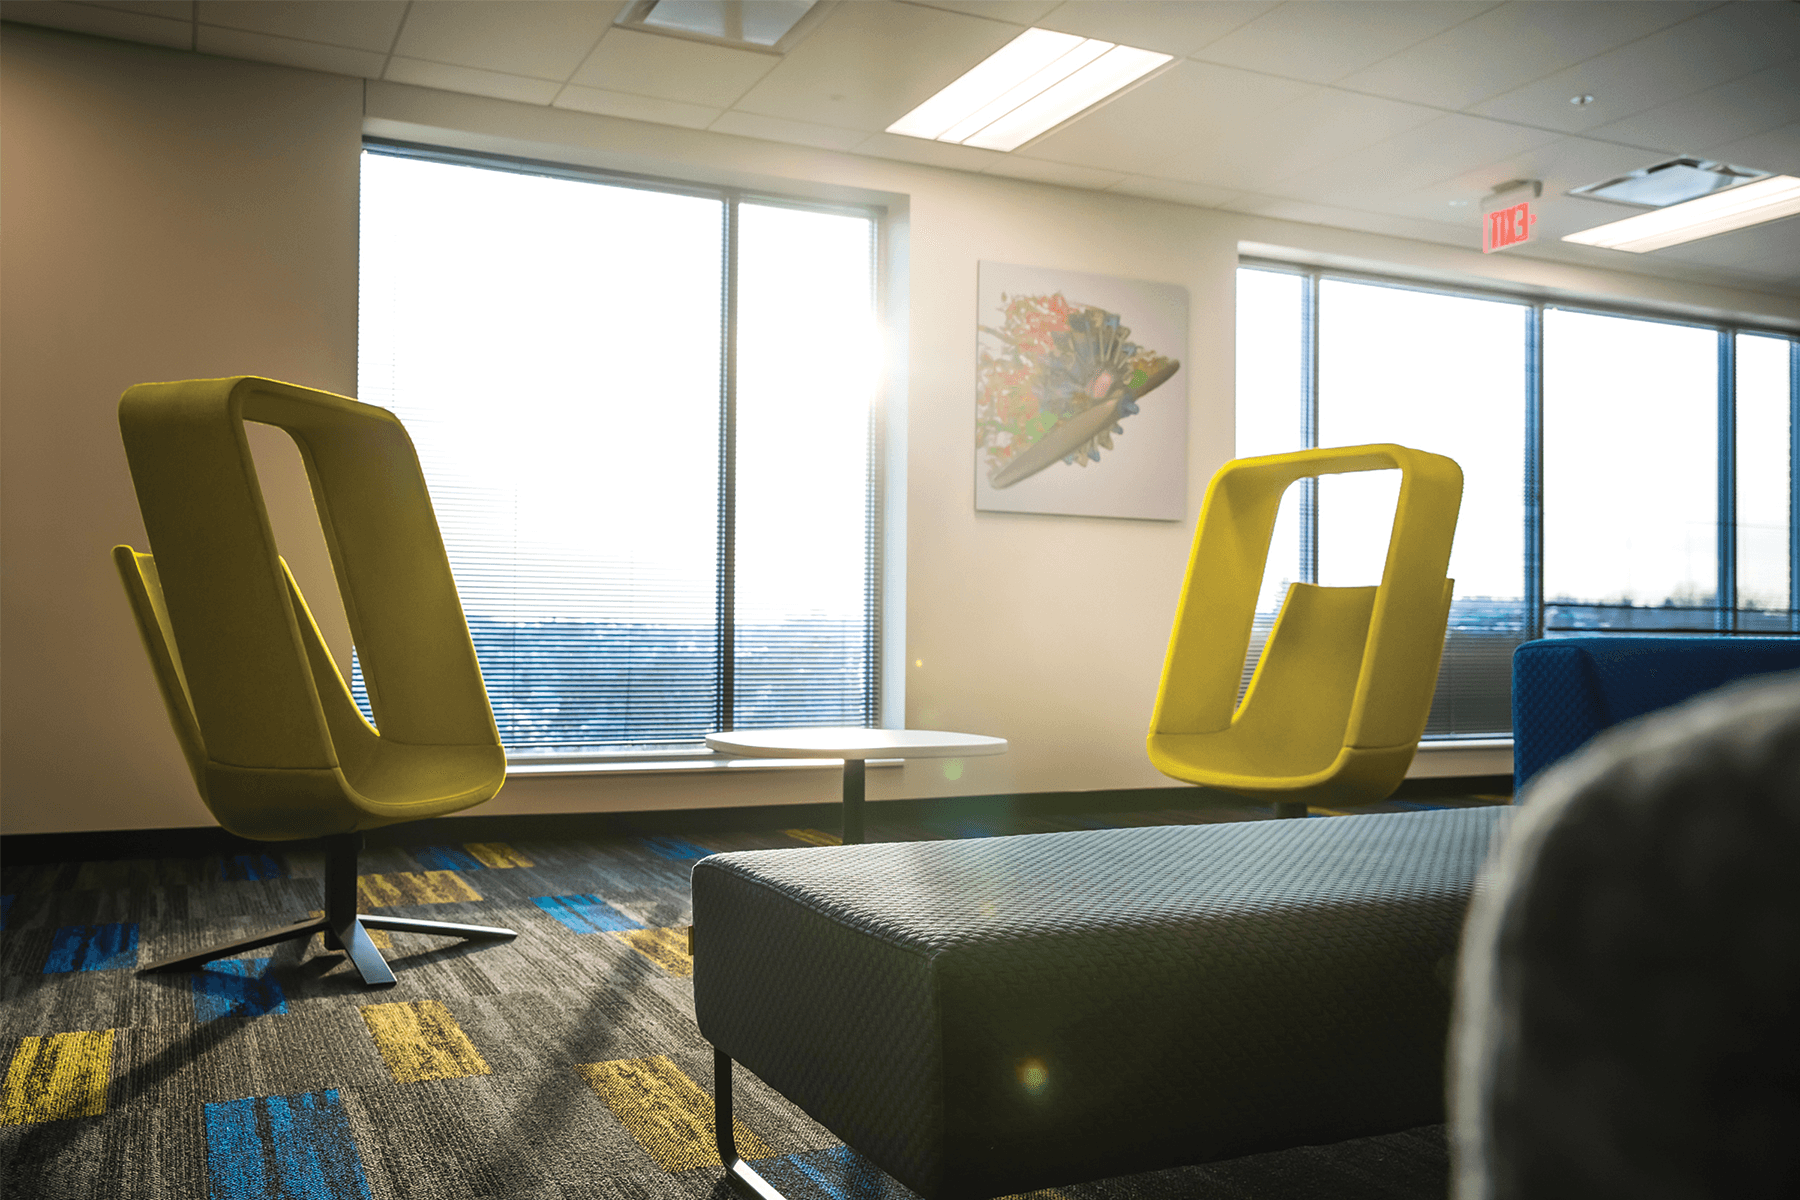 Two bright yellow chairs sitting in front of a wall of with large windows